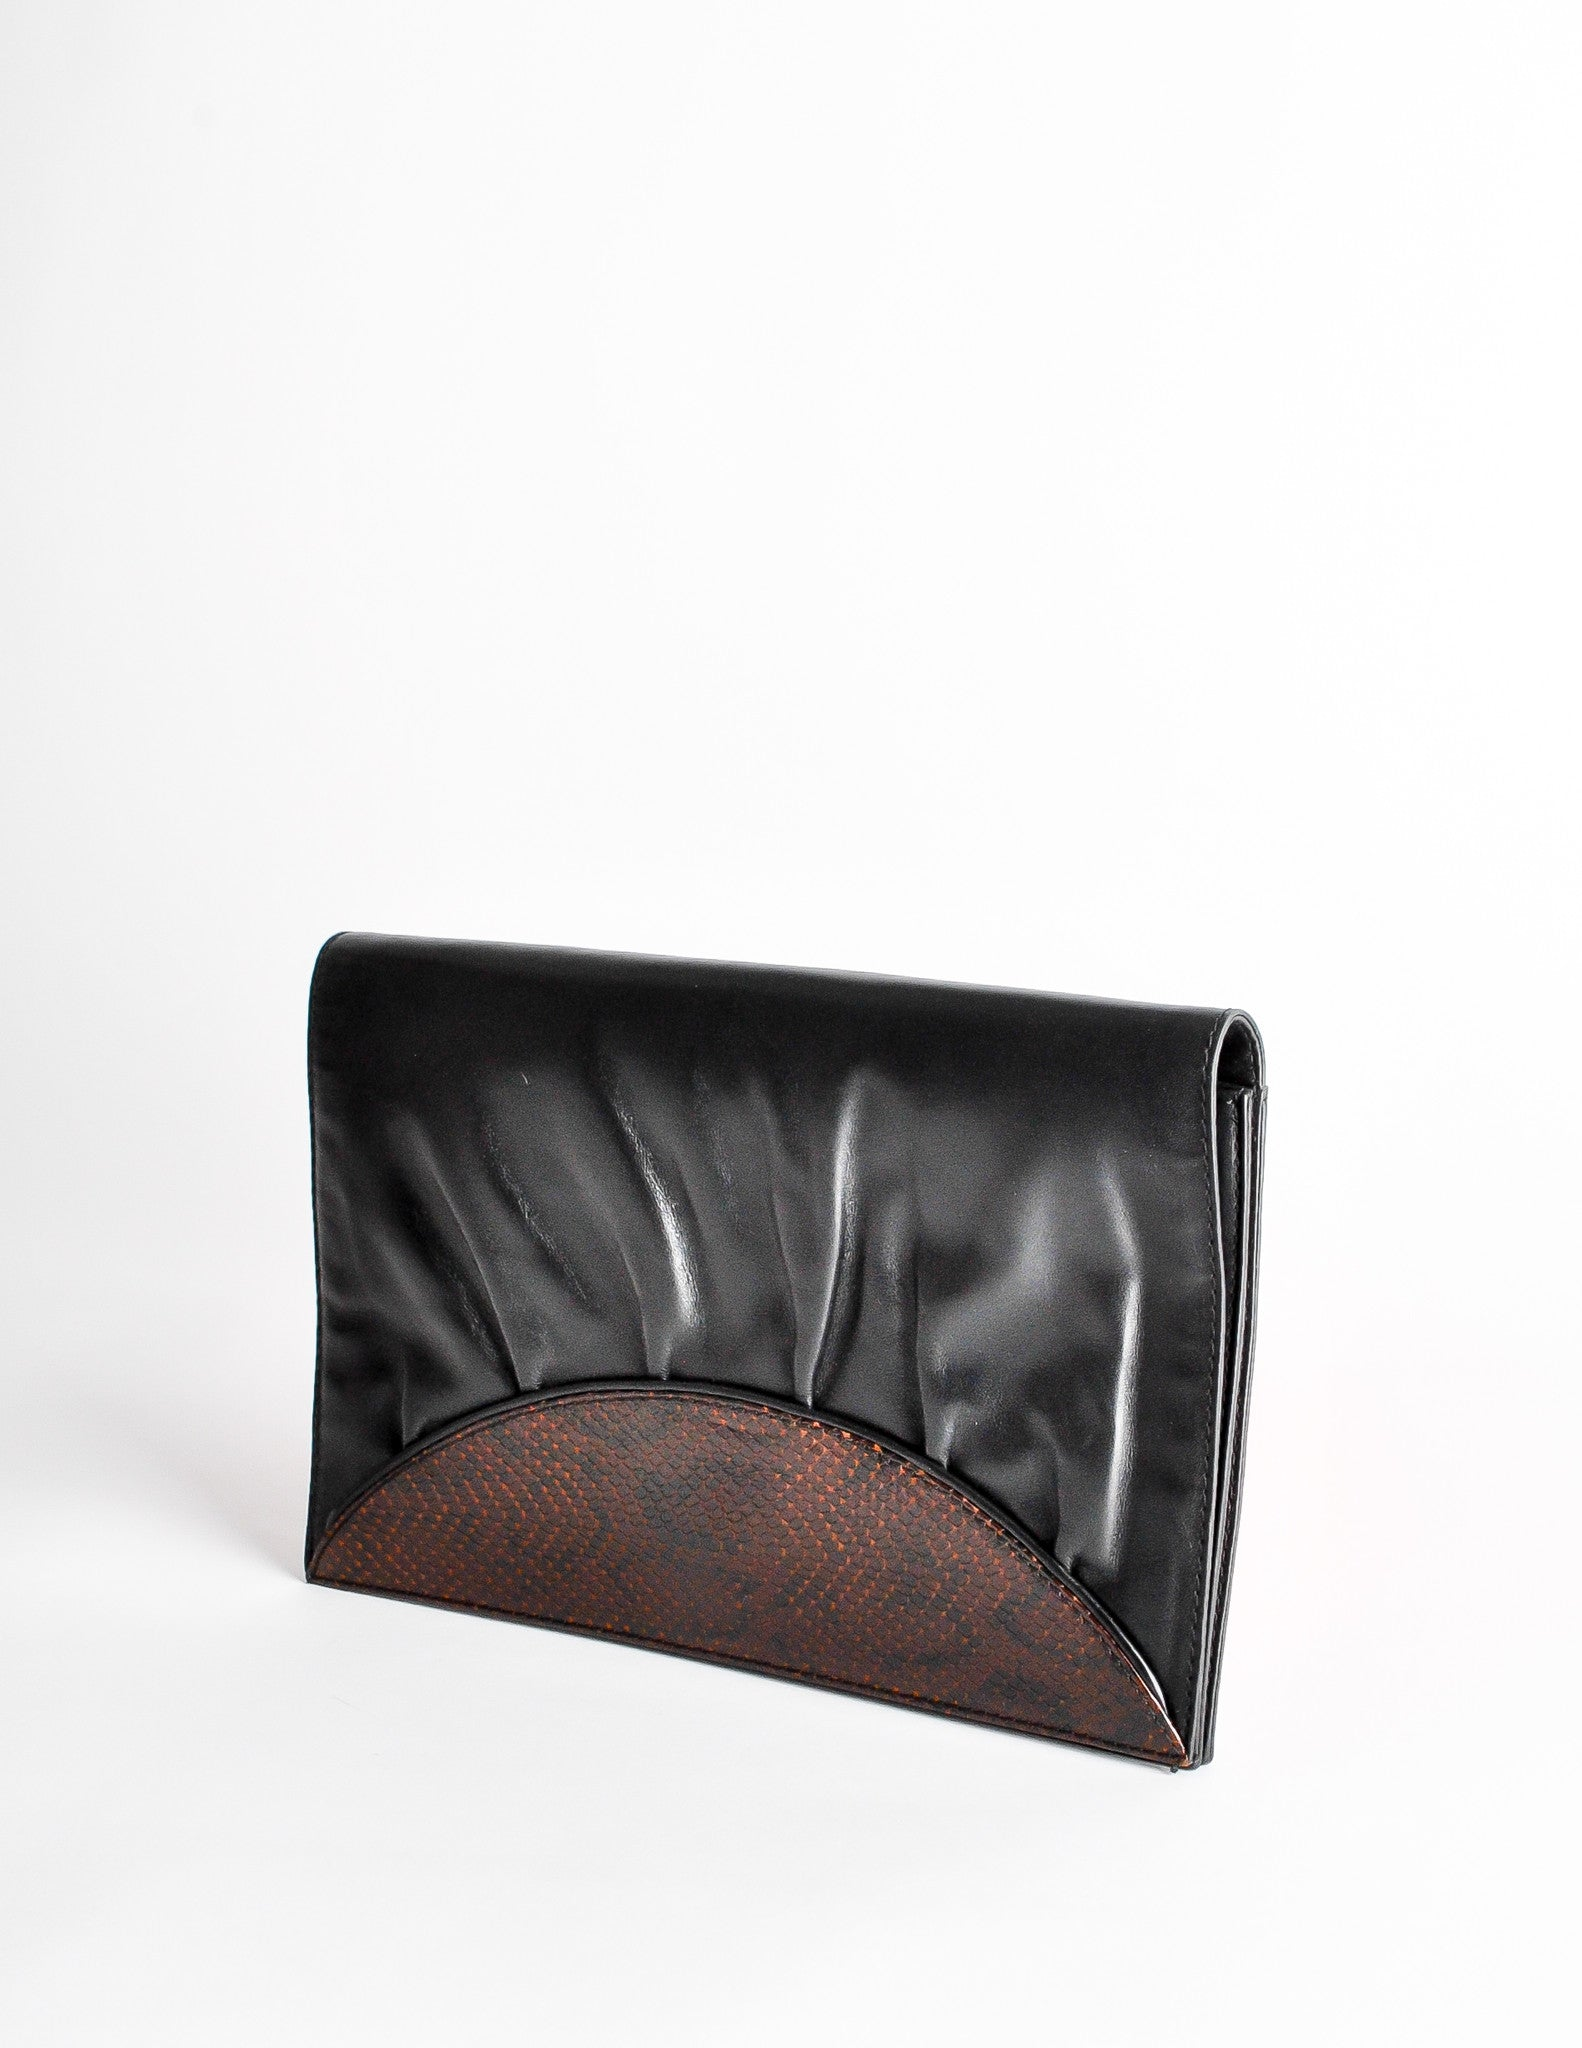 13425401 Fendi Vintage Black and Brown Leather Clutch Purse - from ...